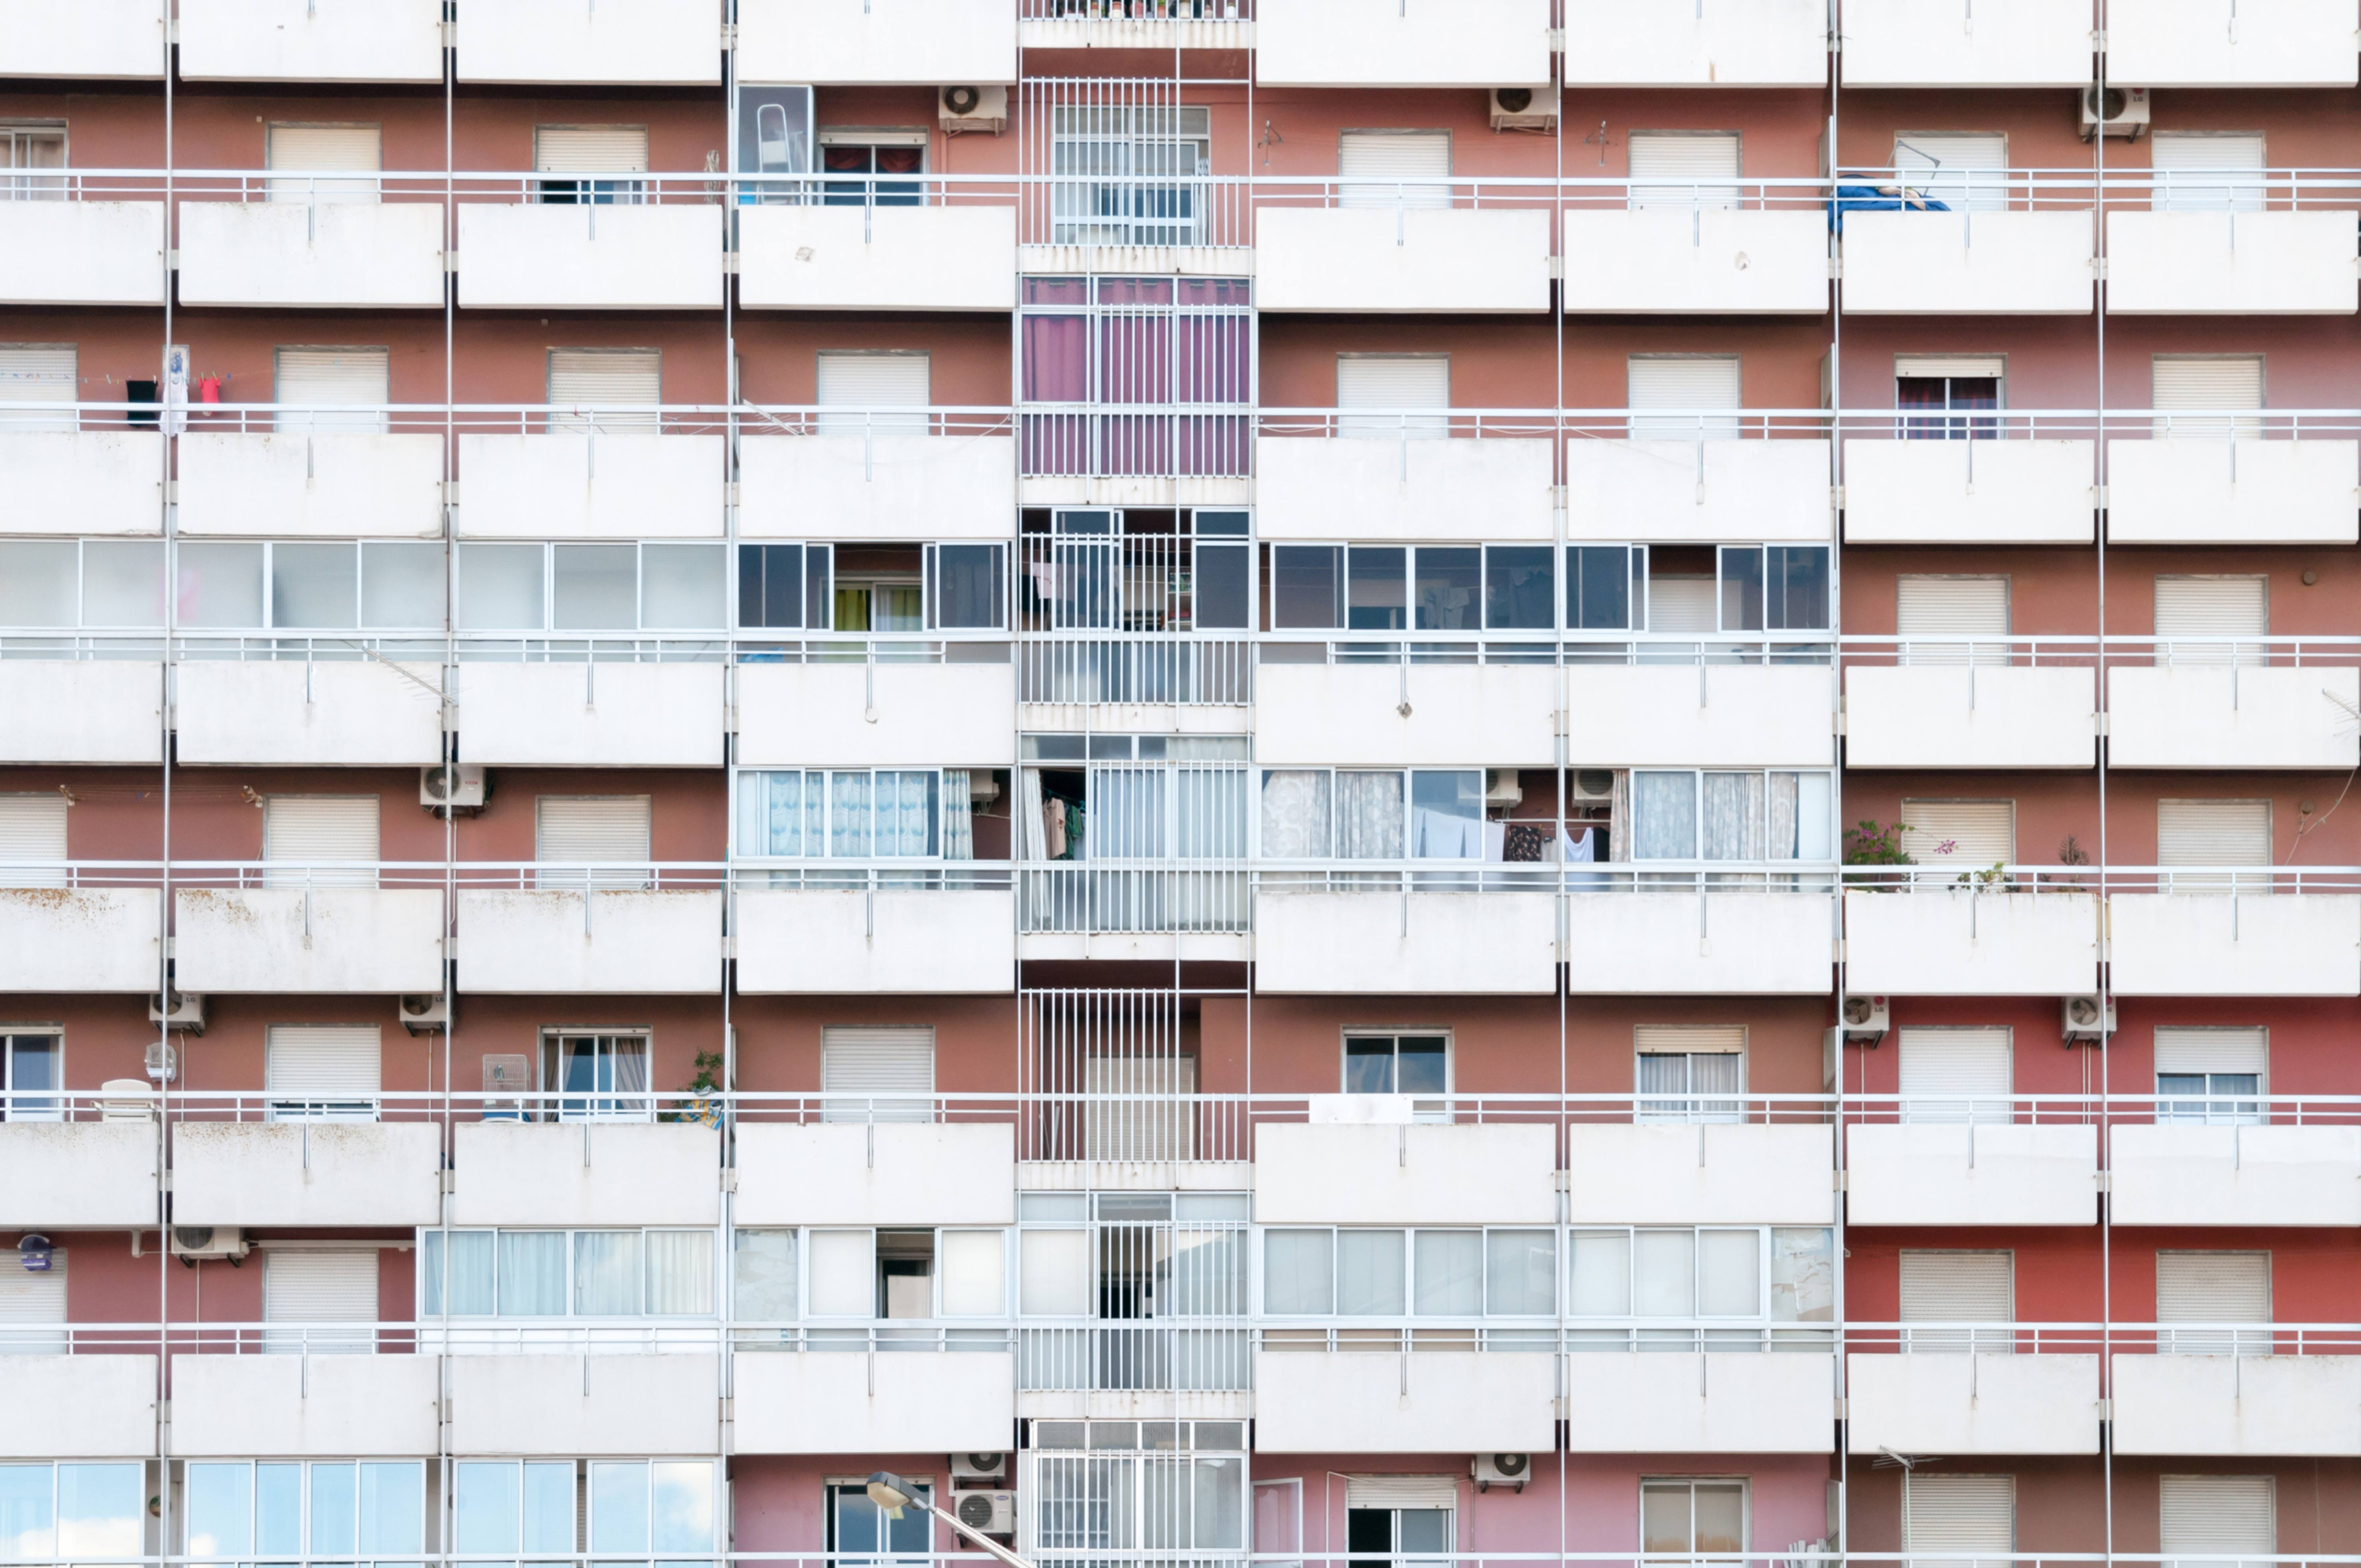 Appartment Building Facade Pattern